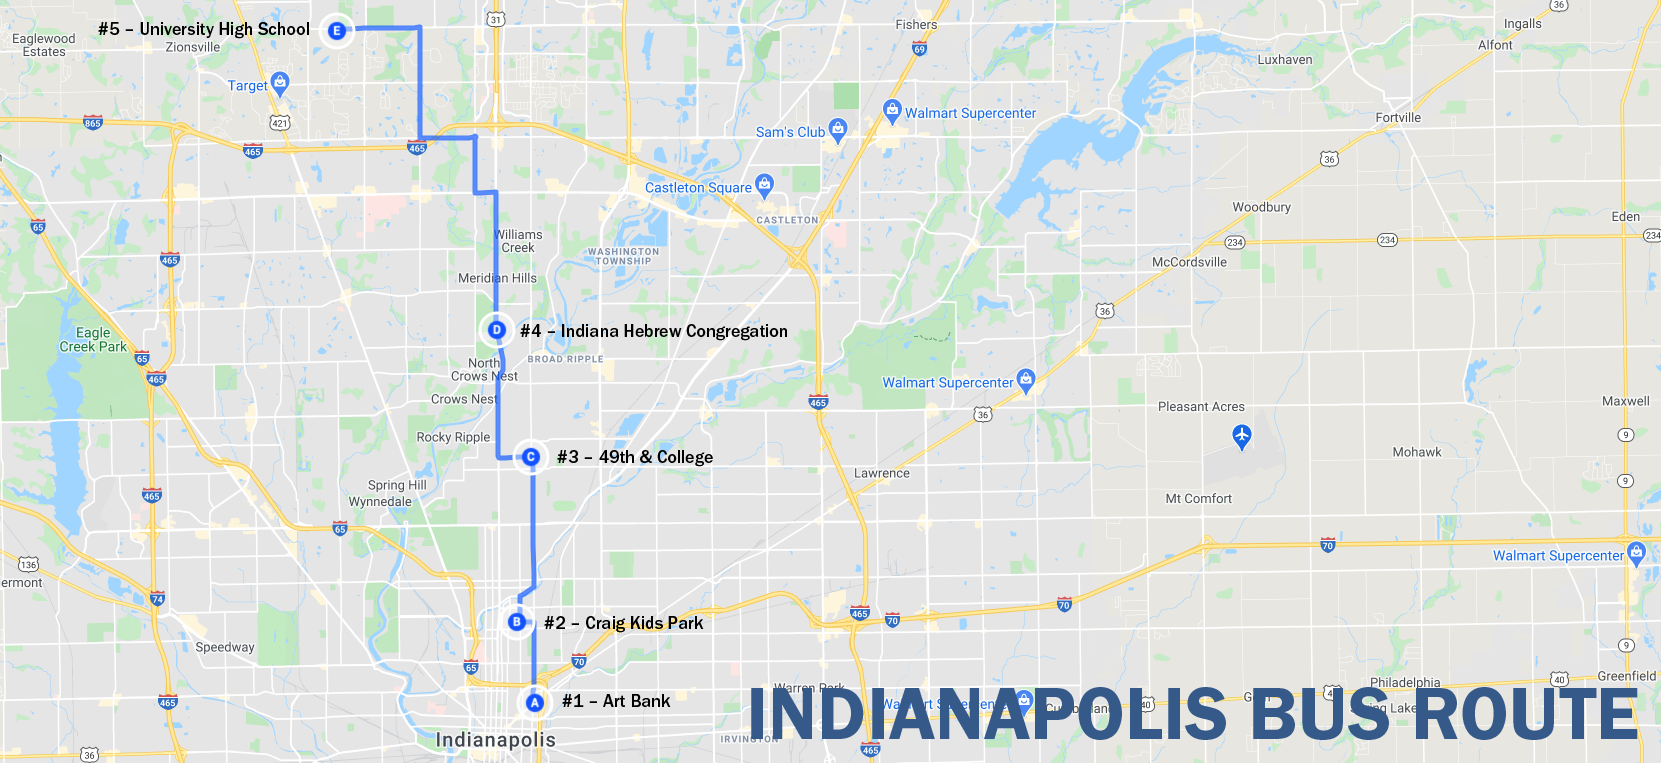 Maps shows Indianapolis route